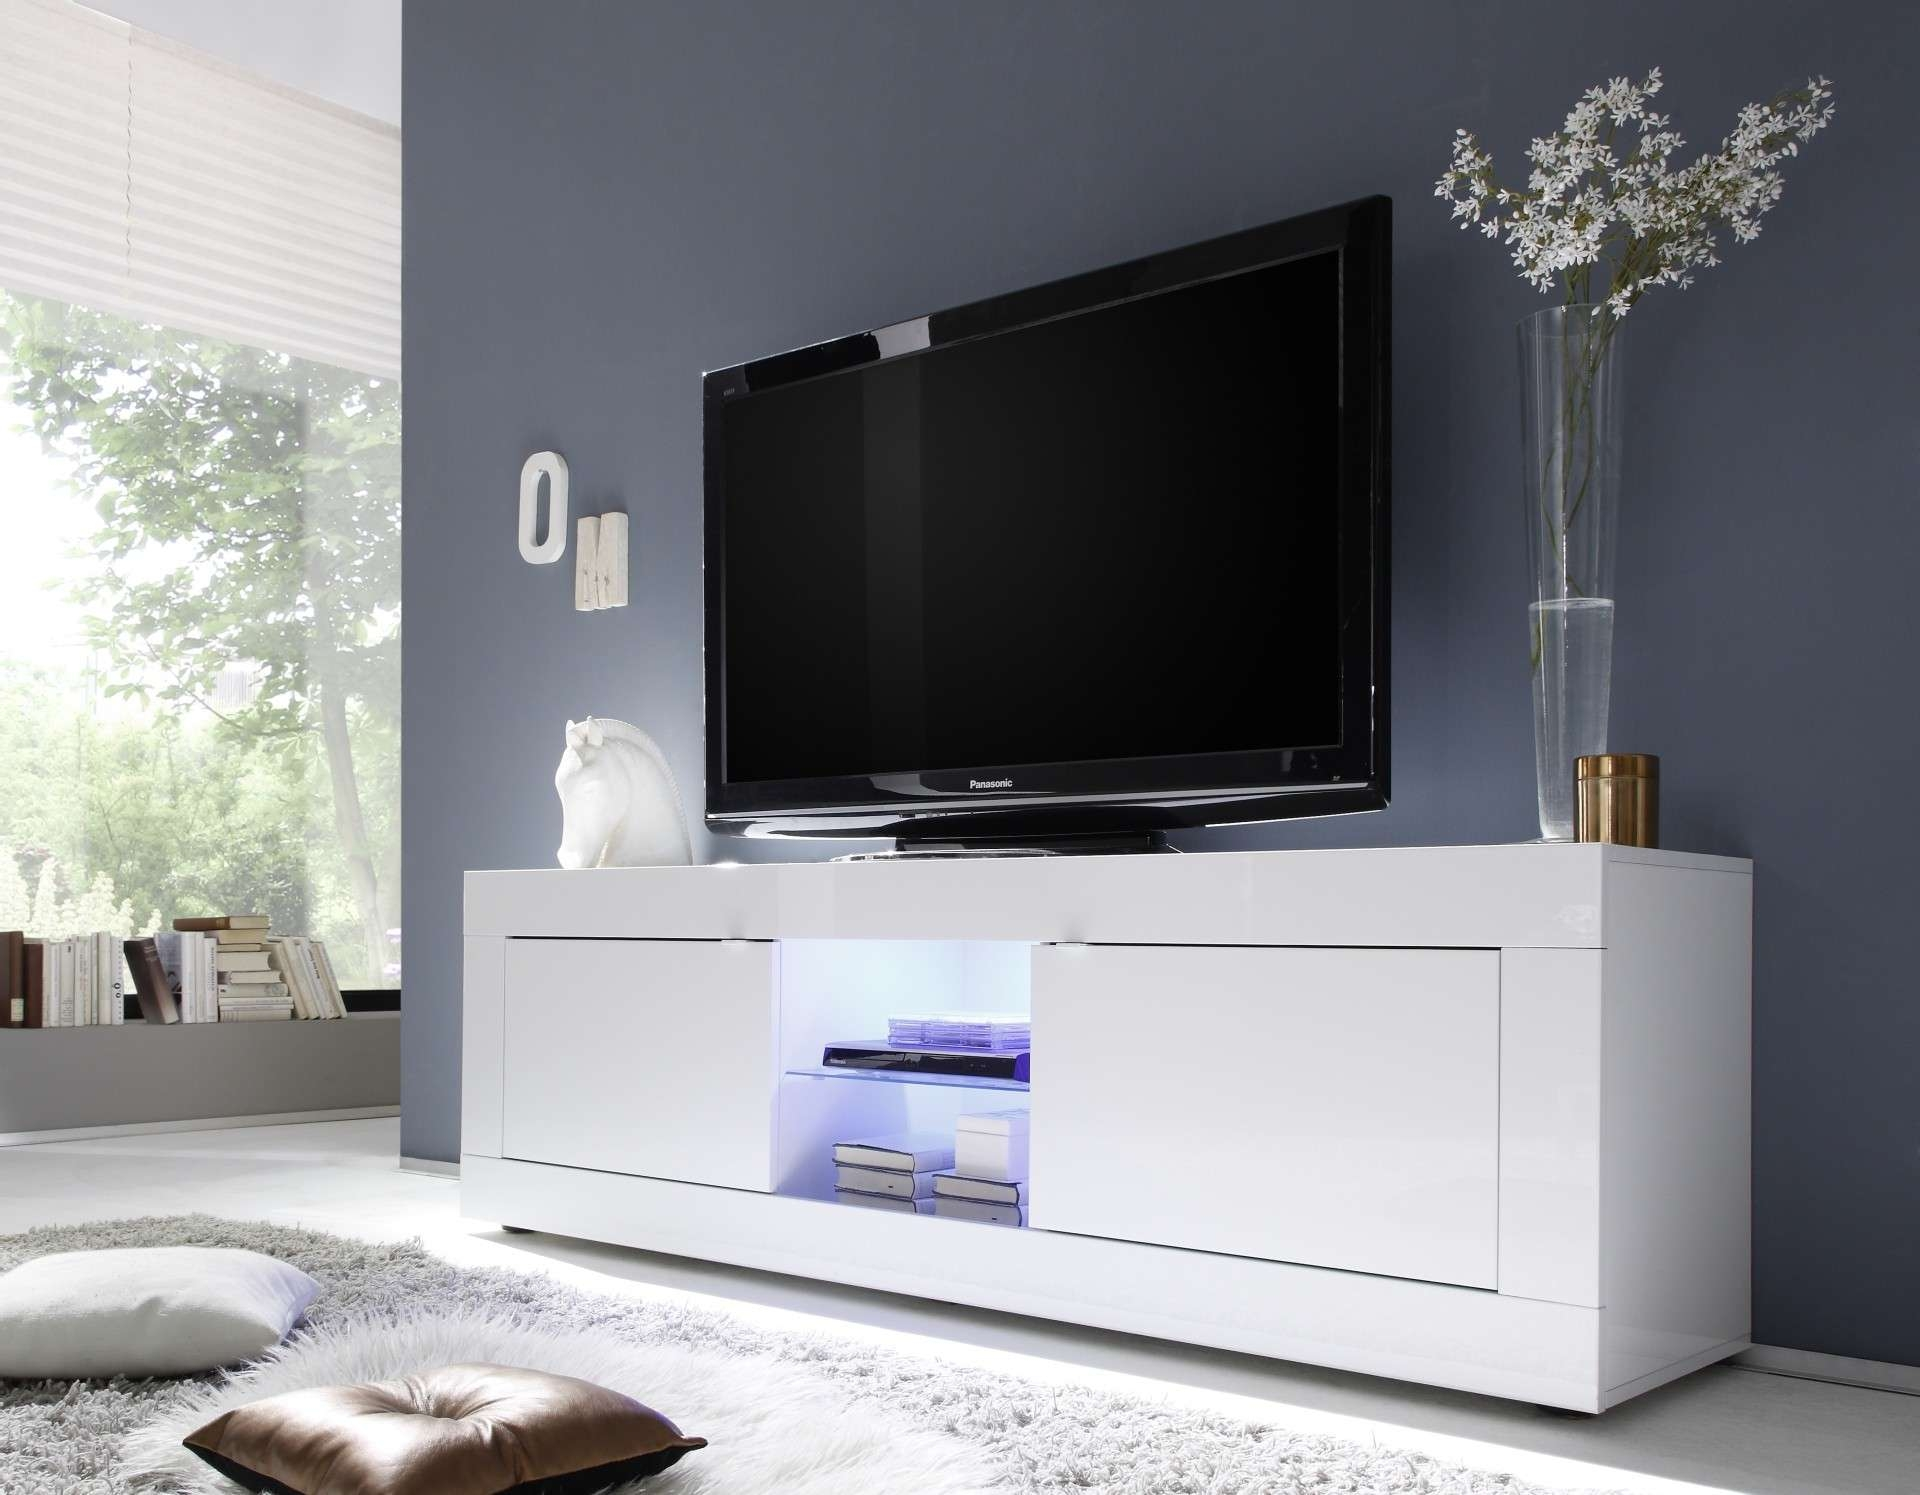 Dolcevita Ii Gloss Tv Stand – Tv Stands – Sena Home Furniture For Gloss White Tv Stands (View 3 of 15)